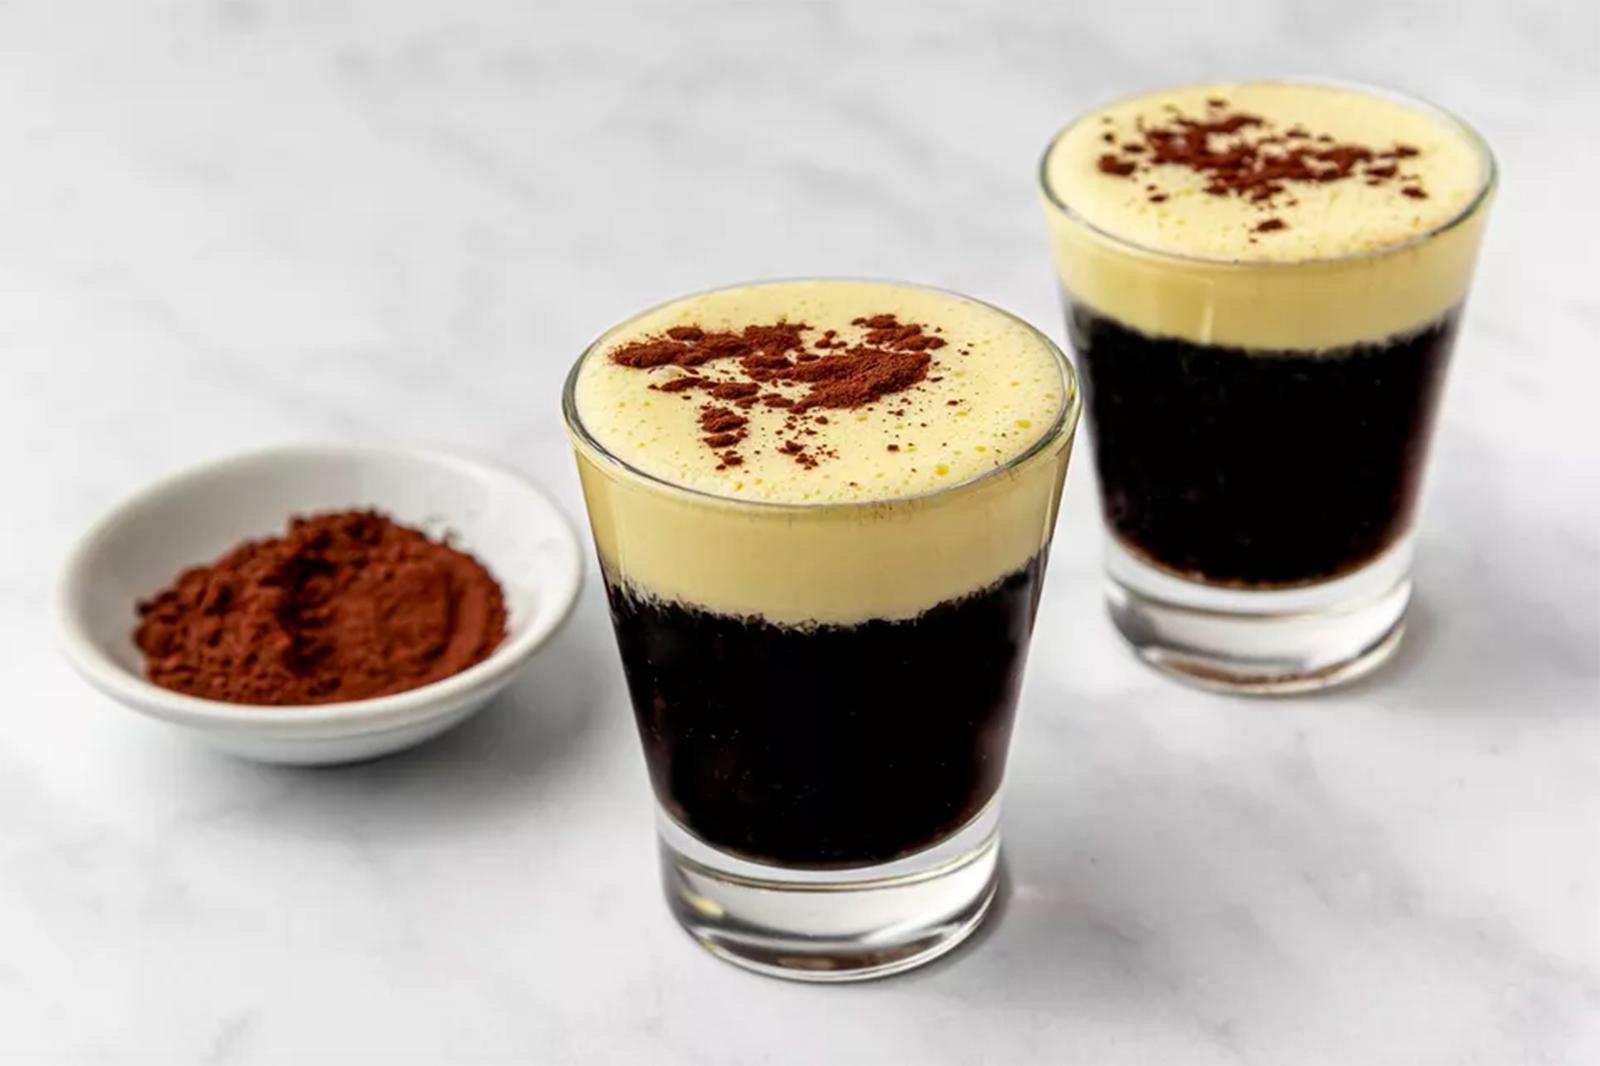 two small glasses with Vietnamese coffee in them, next to a small bowl with cocoa powder, on a marble counter.